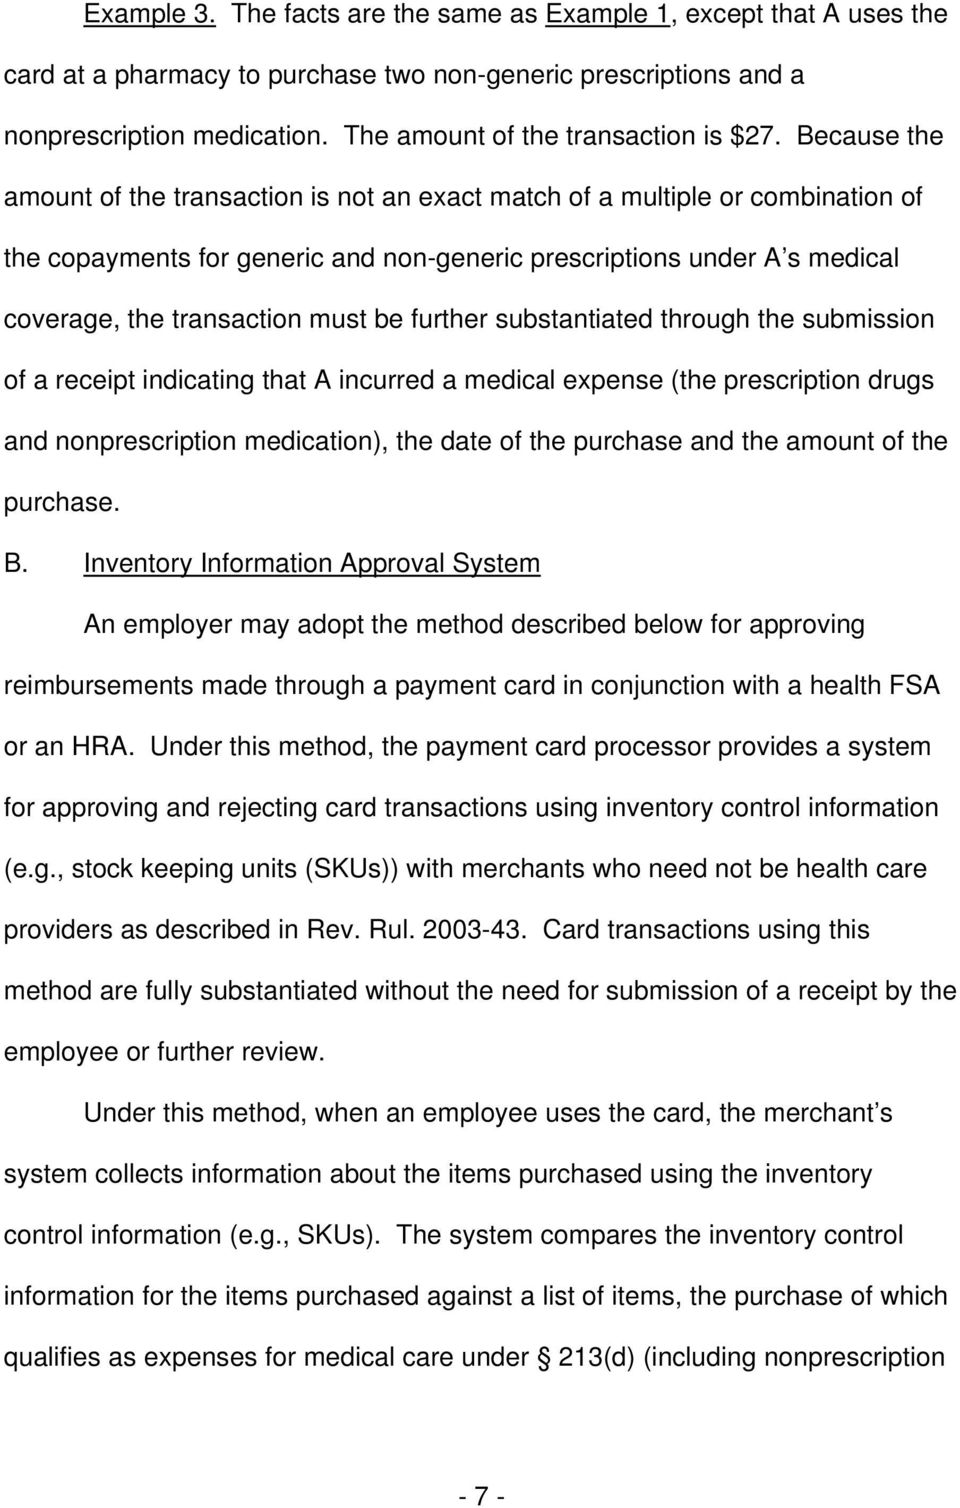 Because the amount of the transaction is not an exact match of a multiple or combination of the copayments for generic and non-generic prescriptions under A s medical coverage, the transaction must